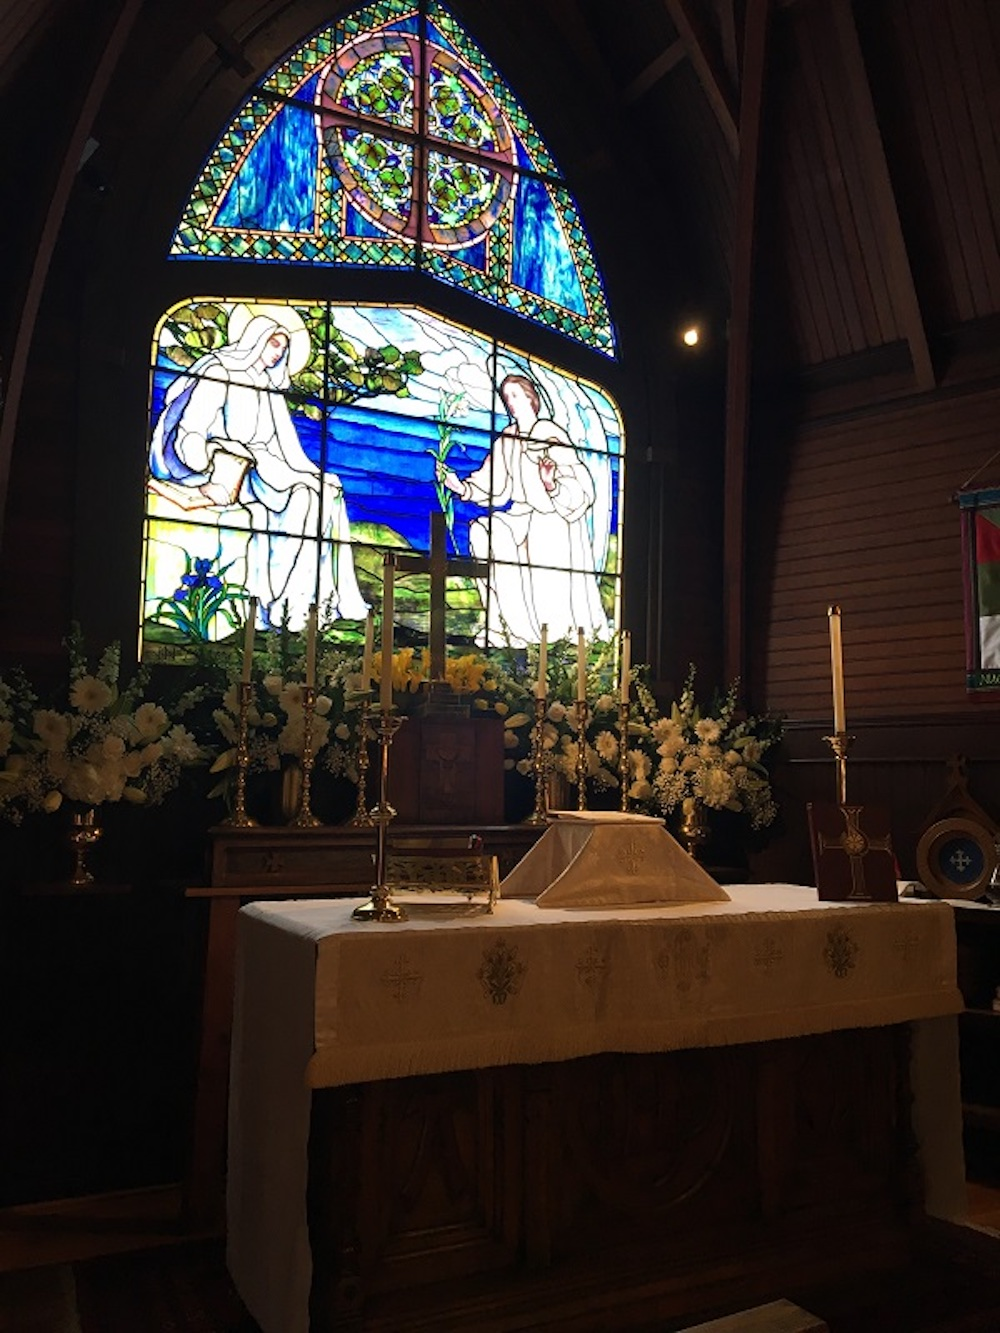 We celebrated our second Easter Sunday via Zoom. This year we featured opening and closing hymn videos, a moving piece by St. Mary's Virtual Choir, as well as a wonderful organ prelude and postlude. It was great to see over 70 smiling, joyful faces.